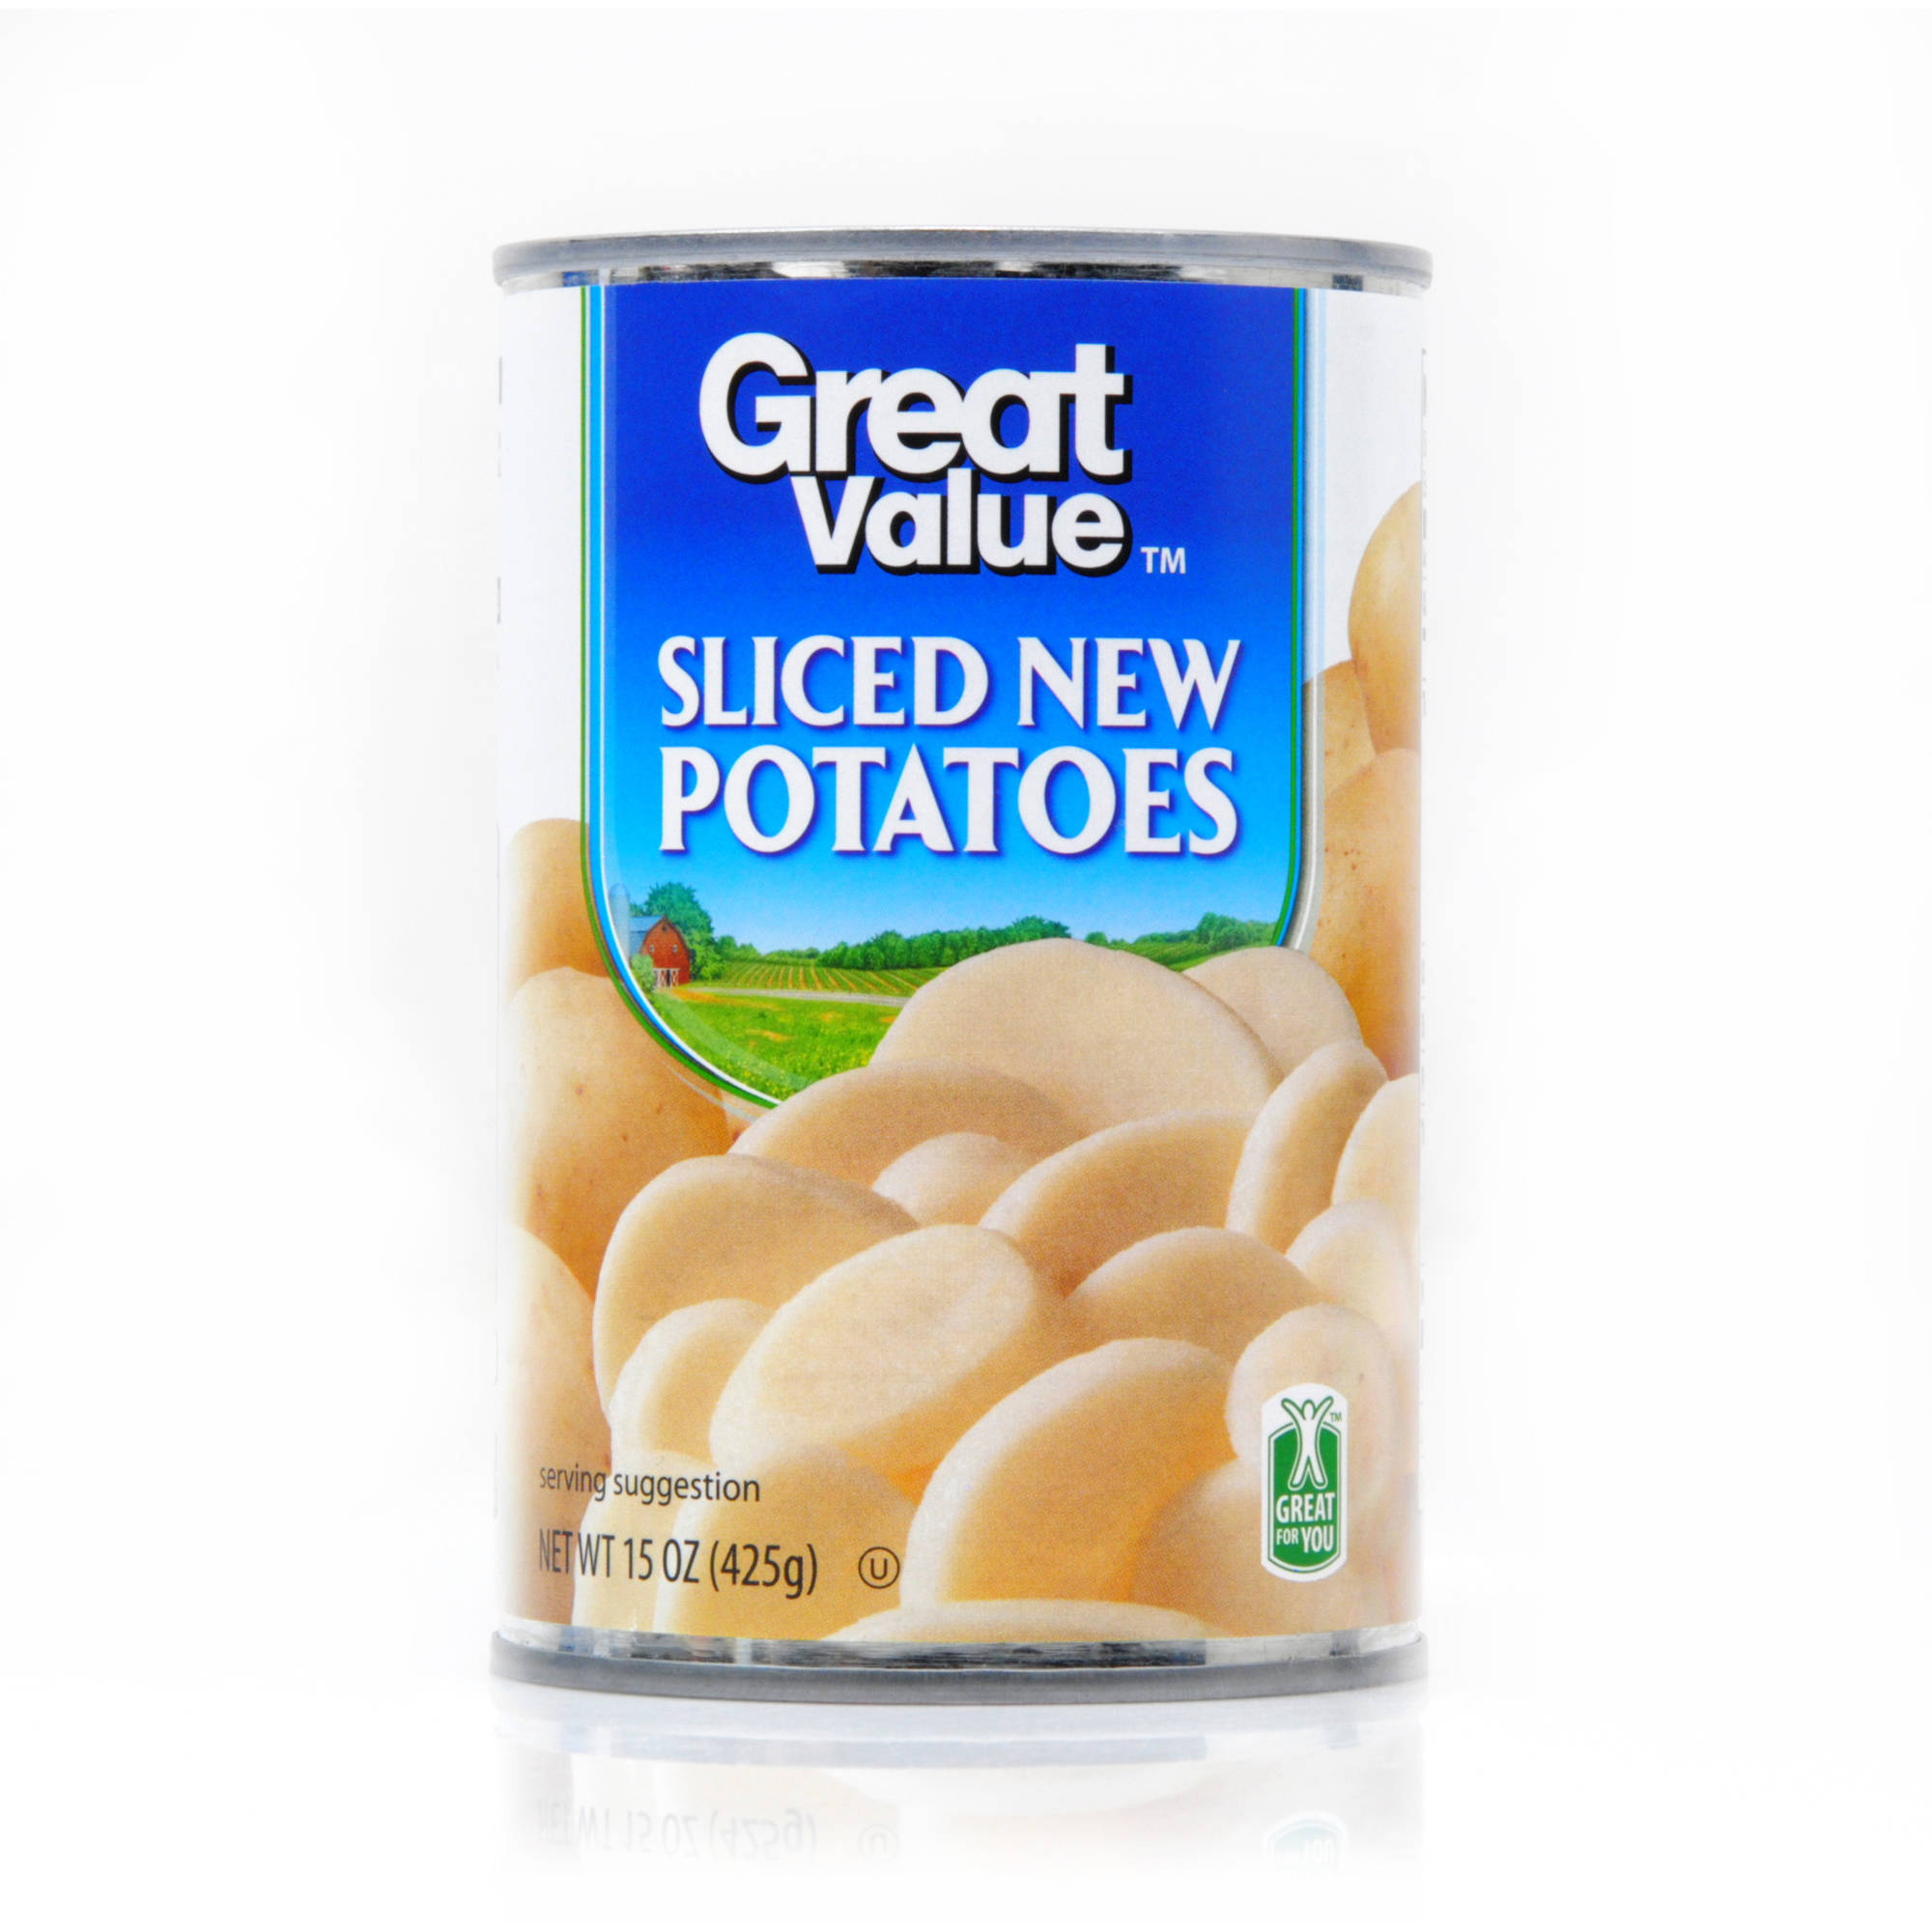 Great Value: Sliced New Potatoes, 15 Oz